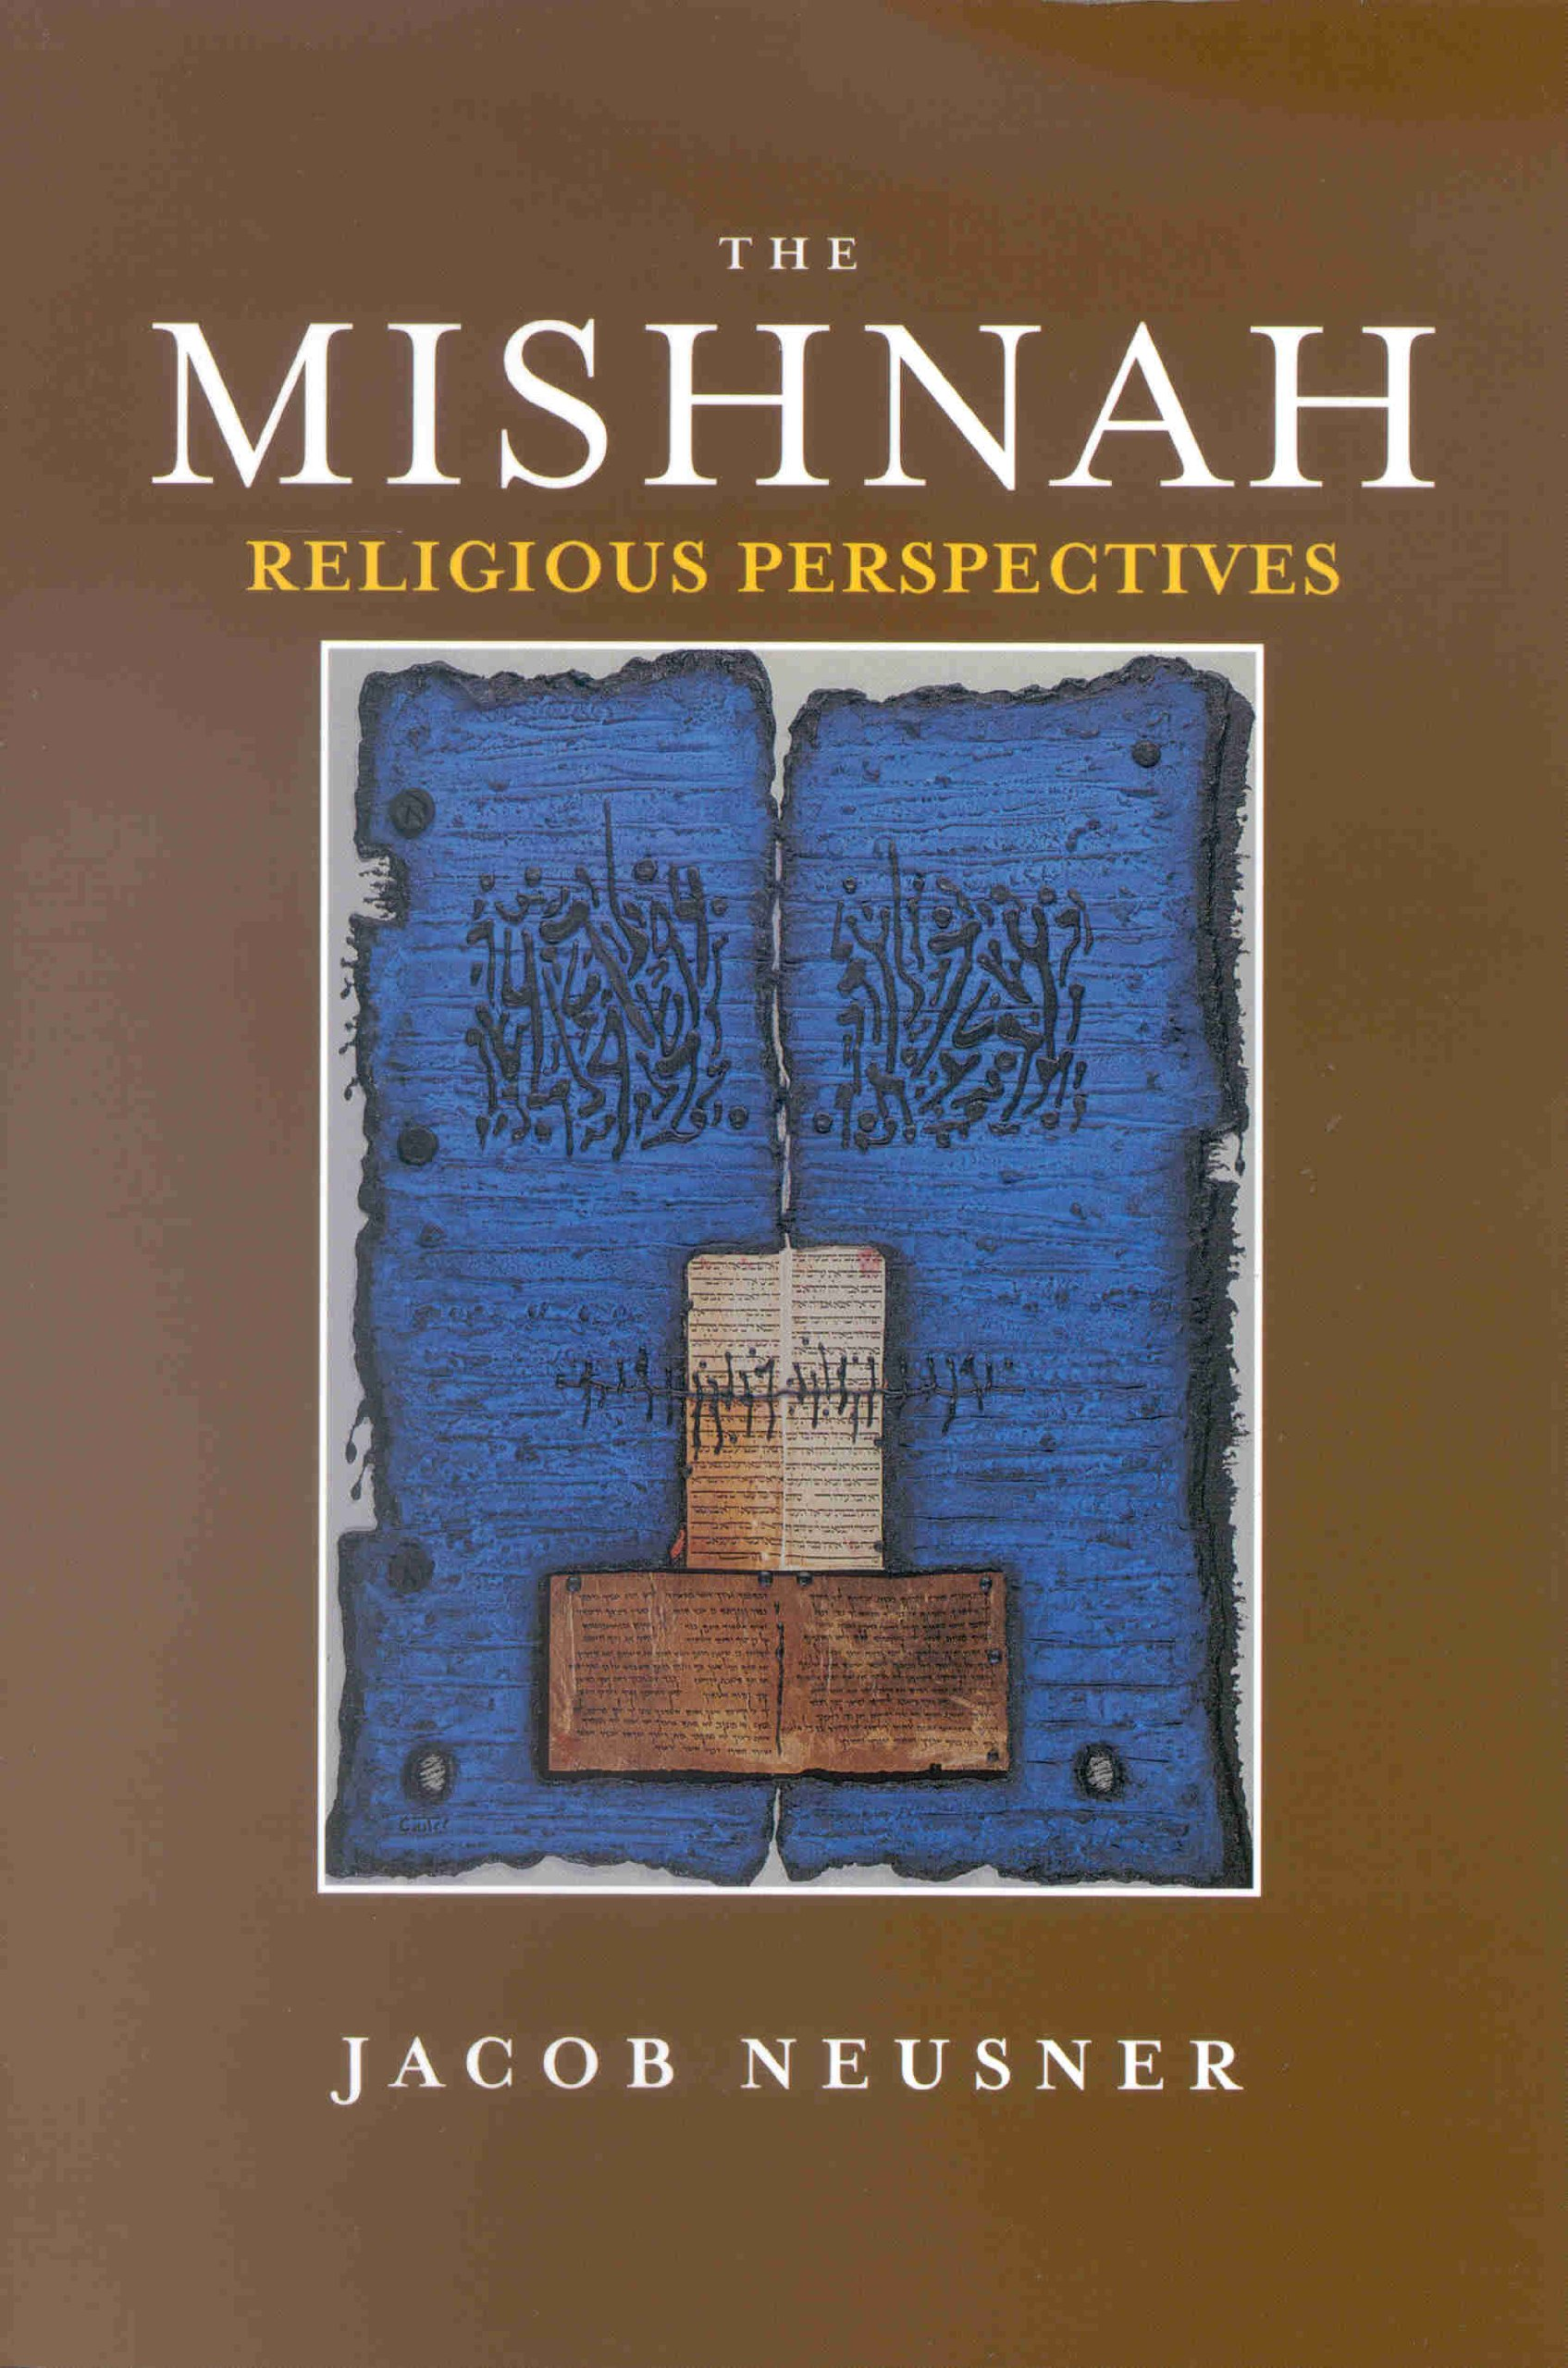 Download The Mishnah: Religious Perspectives pdf